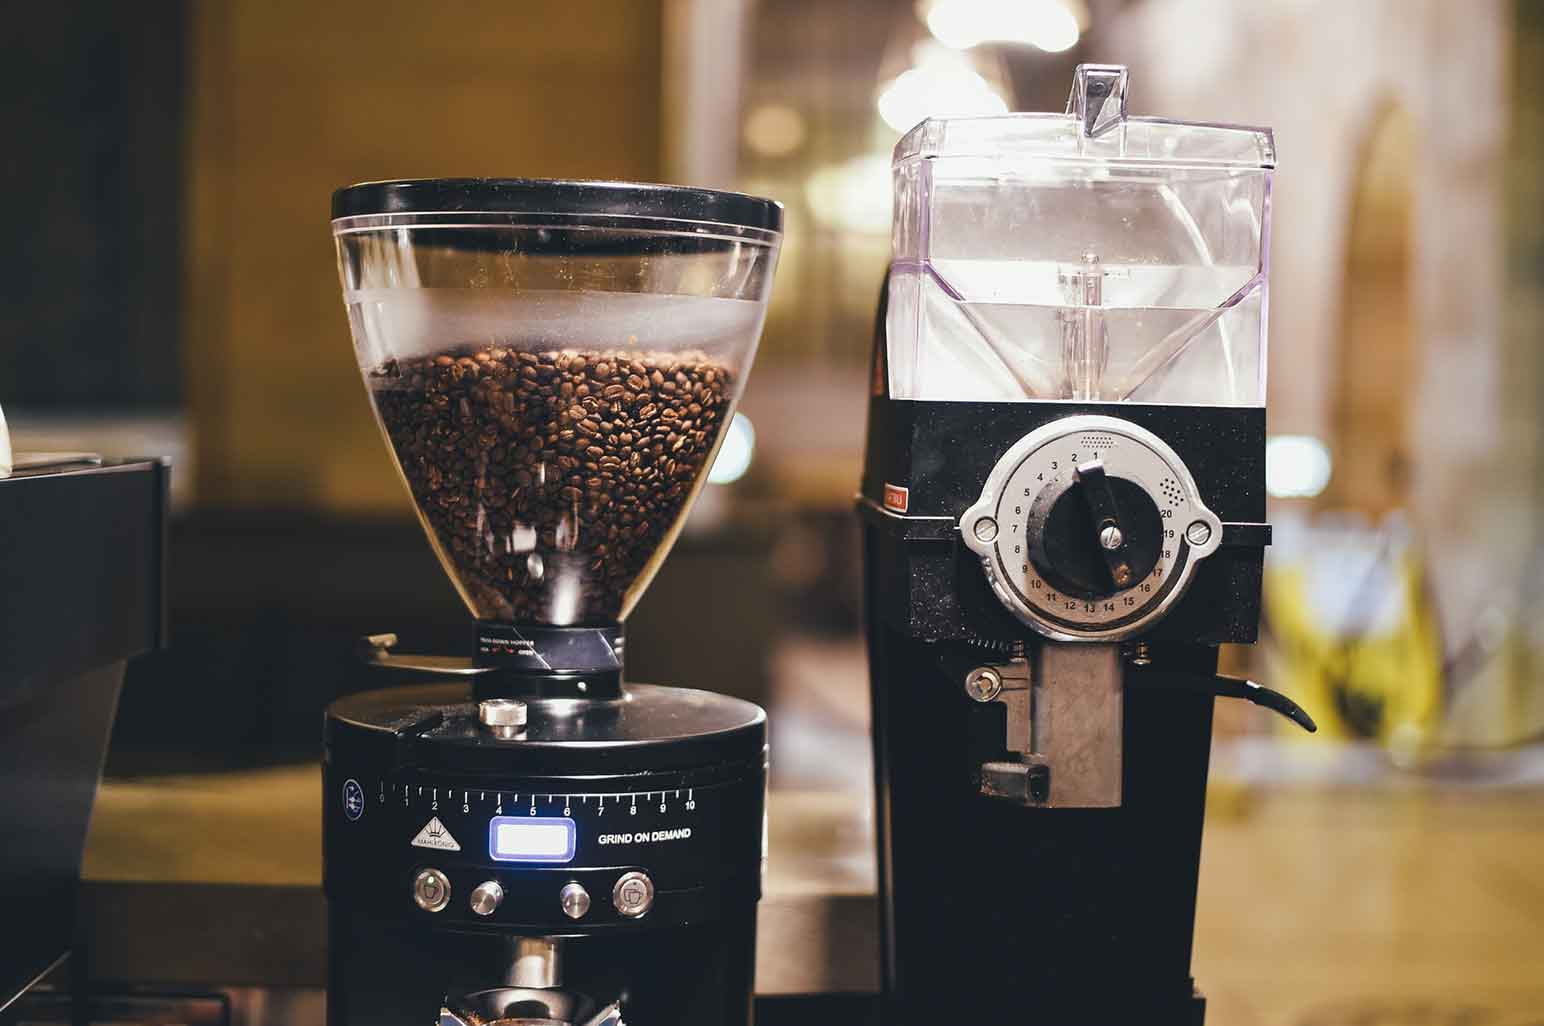 Things to Consider When Buying a Coffee Grinder